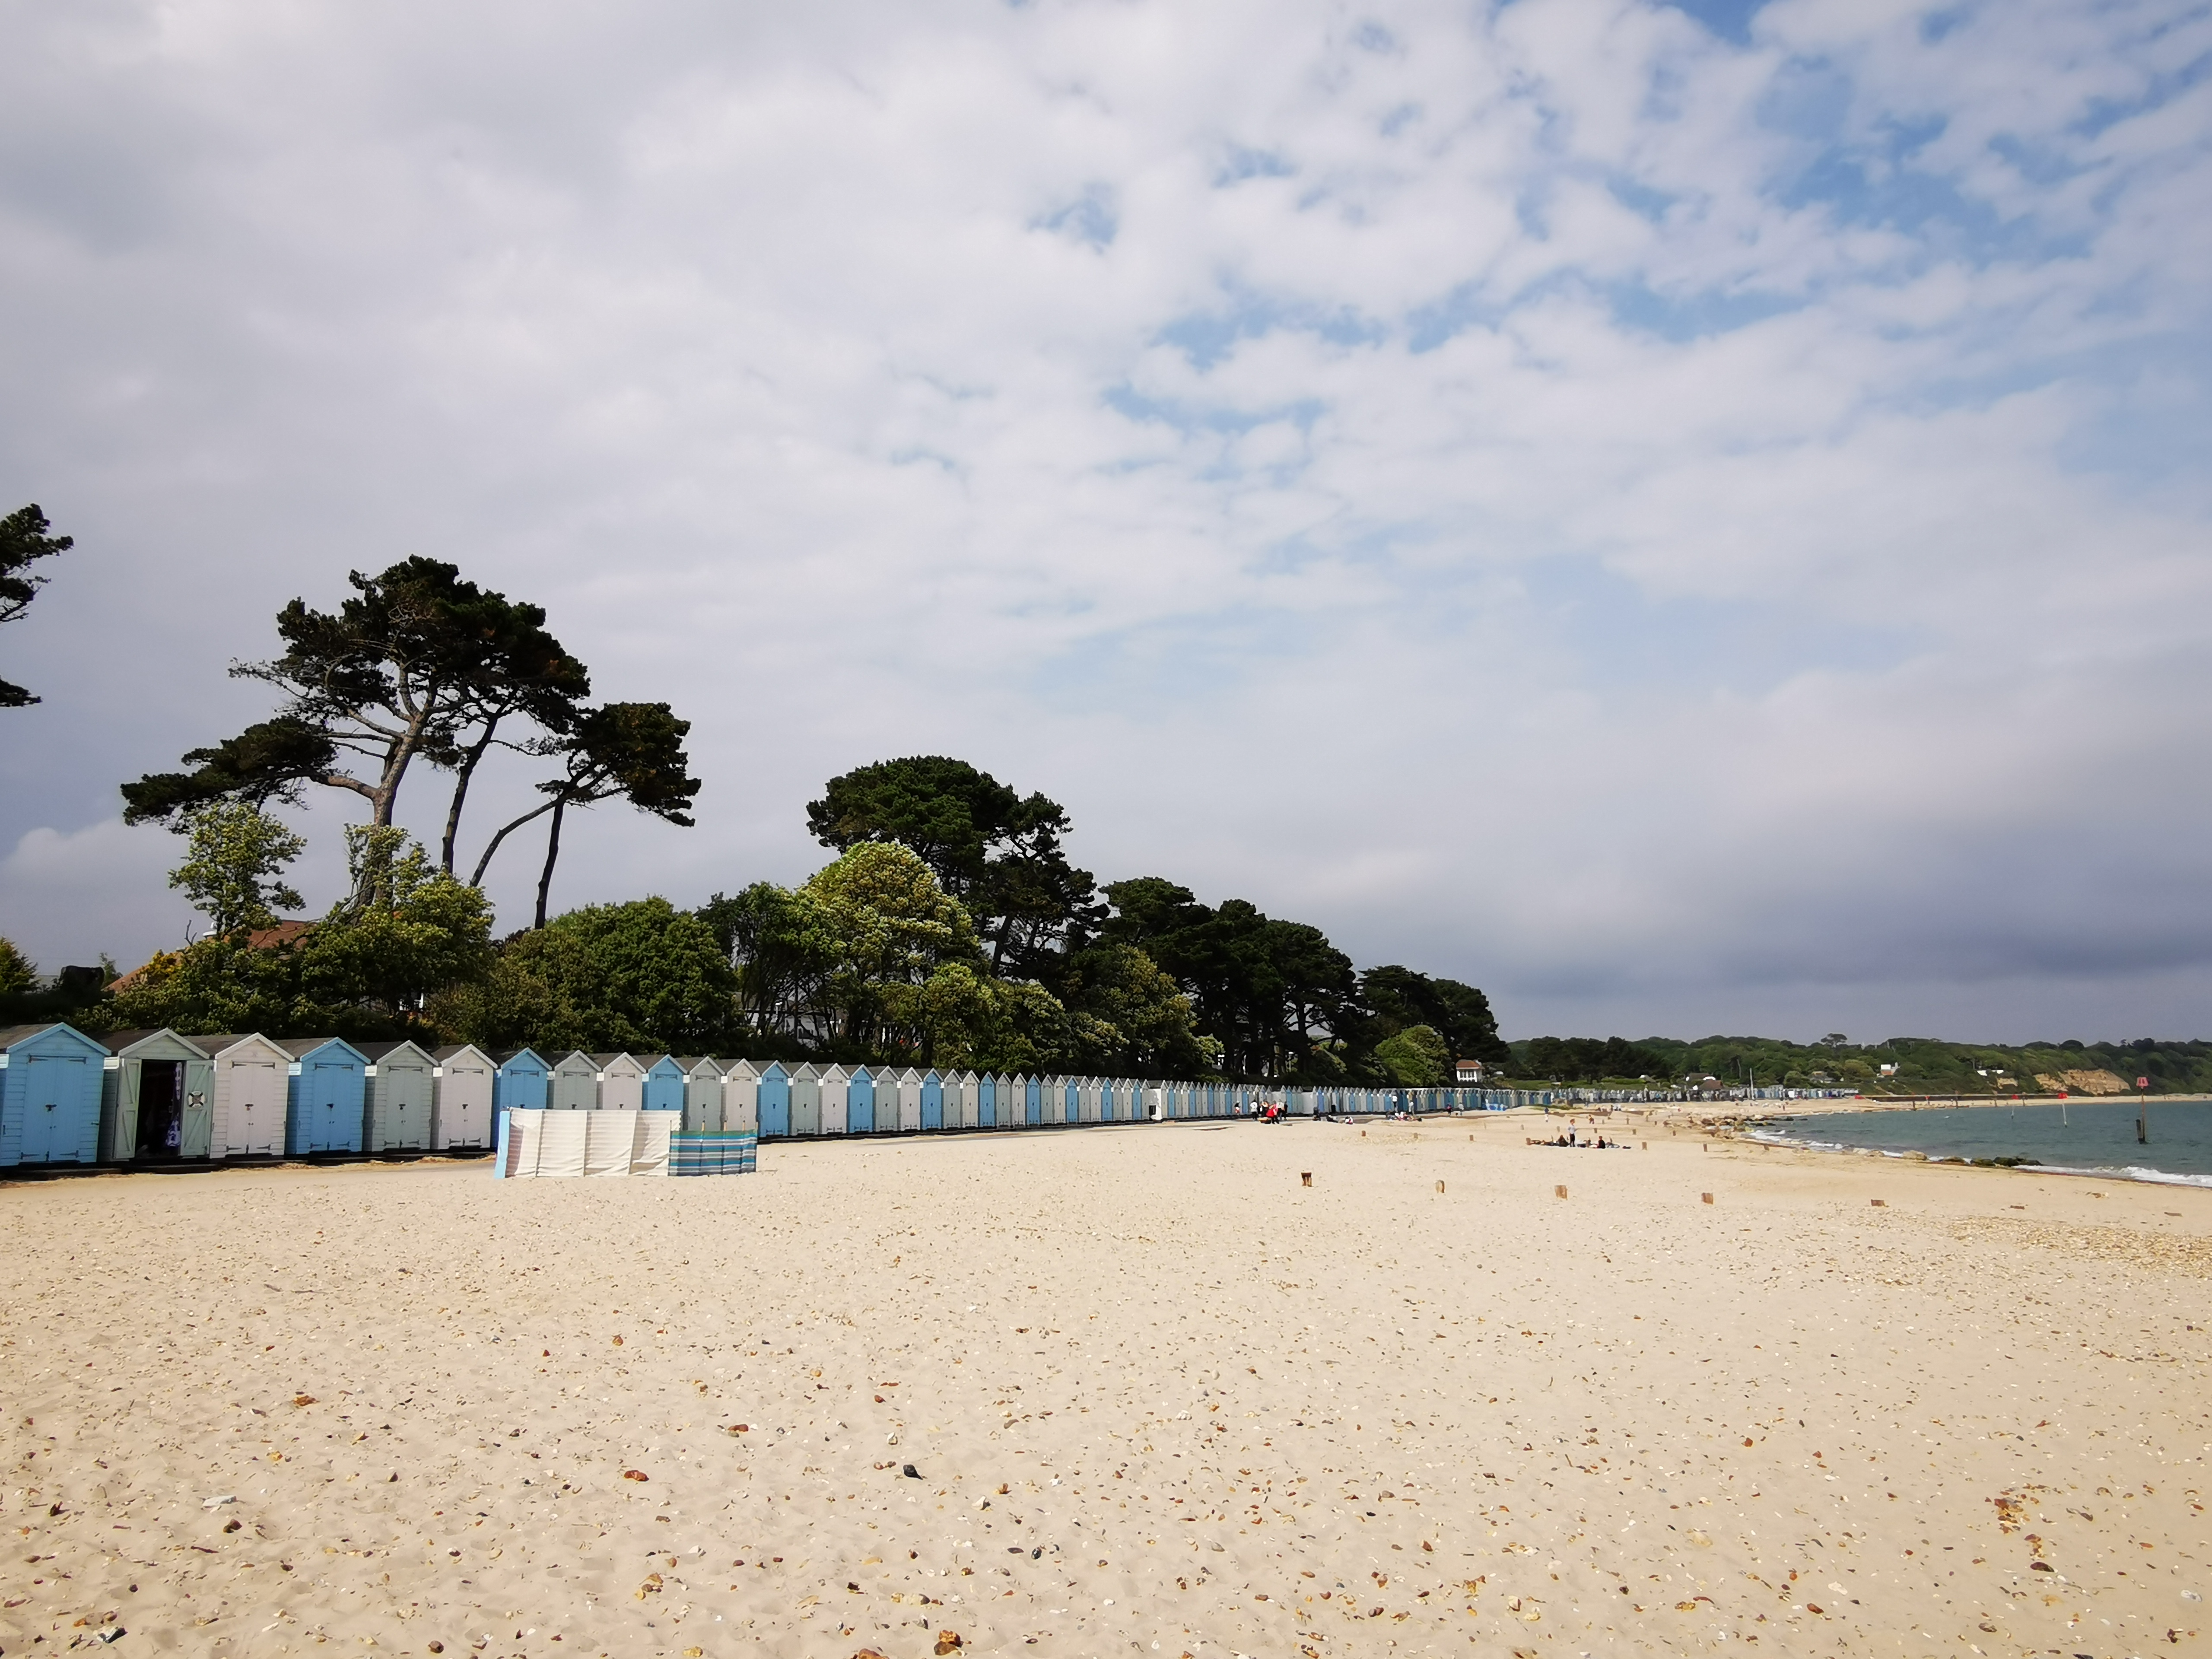 Shot looking down avon beach with the beach huts all lined up and beach goers enjoying the sun